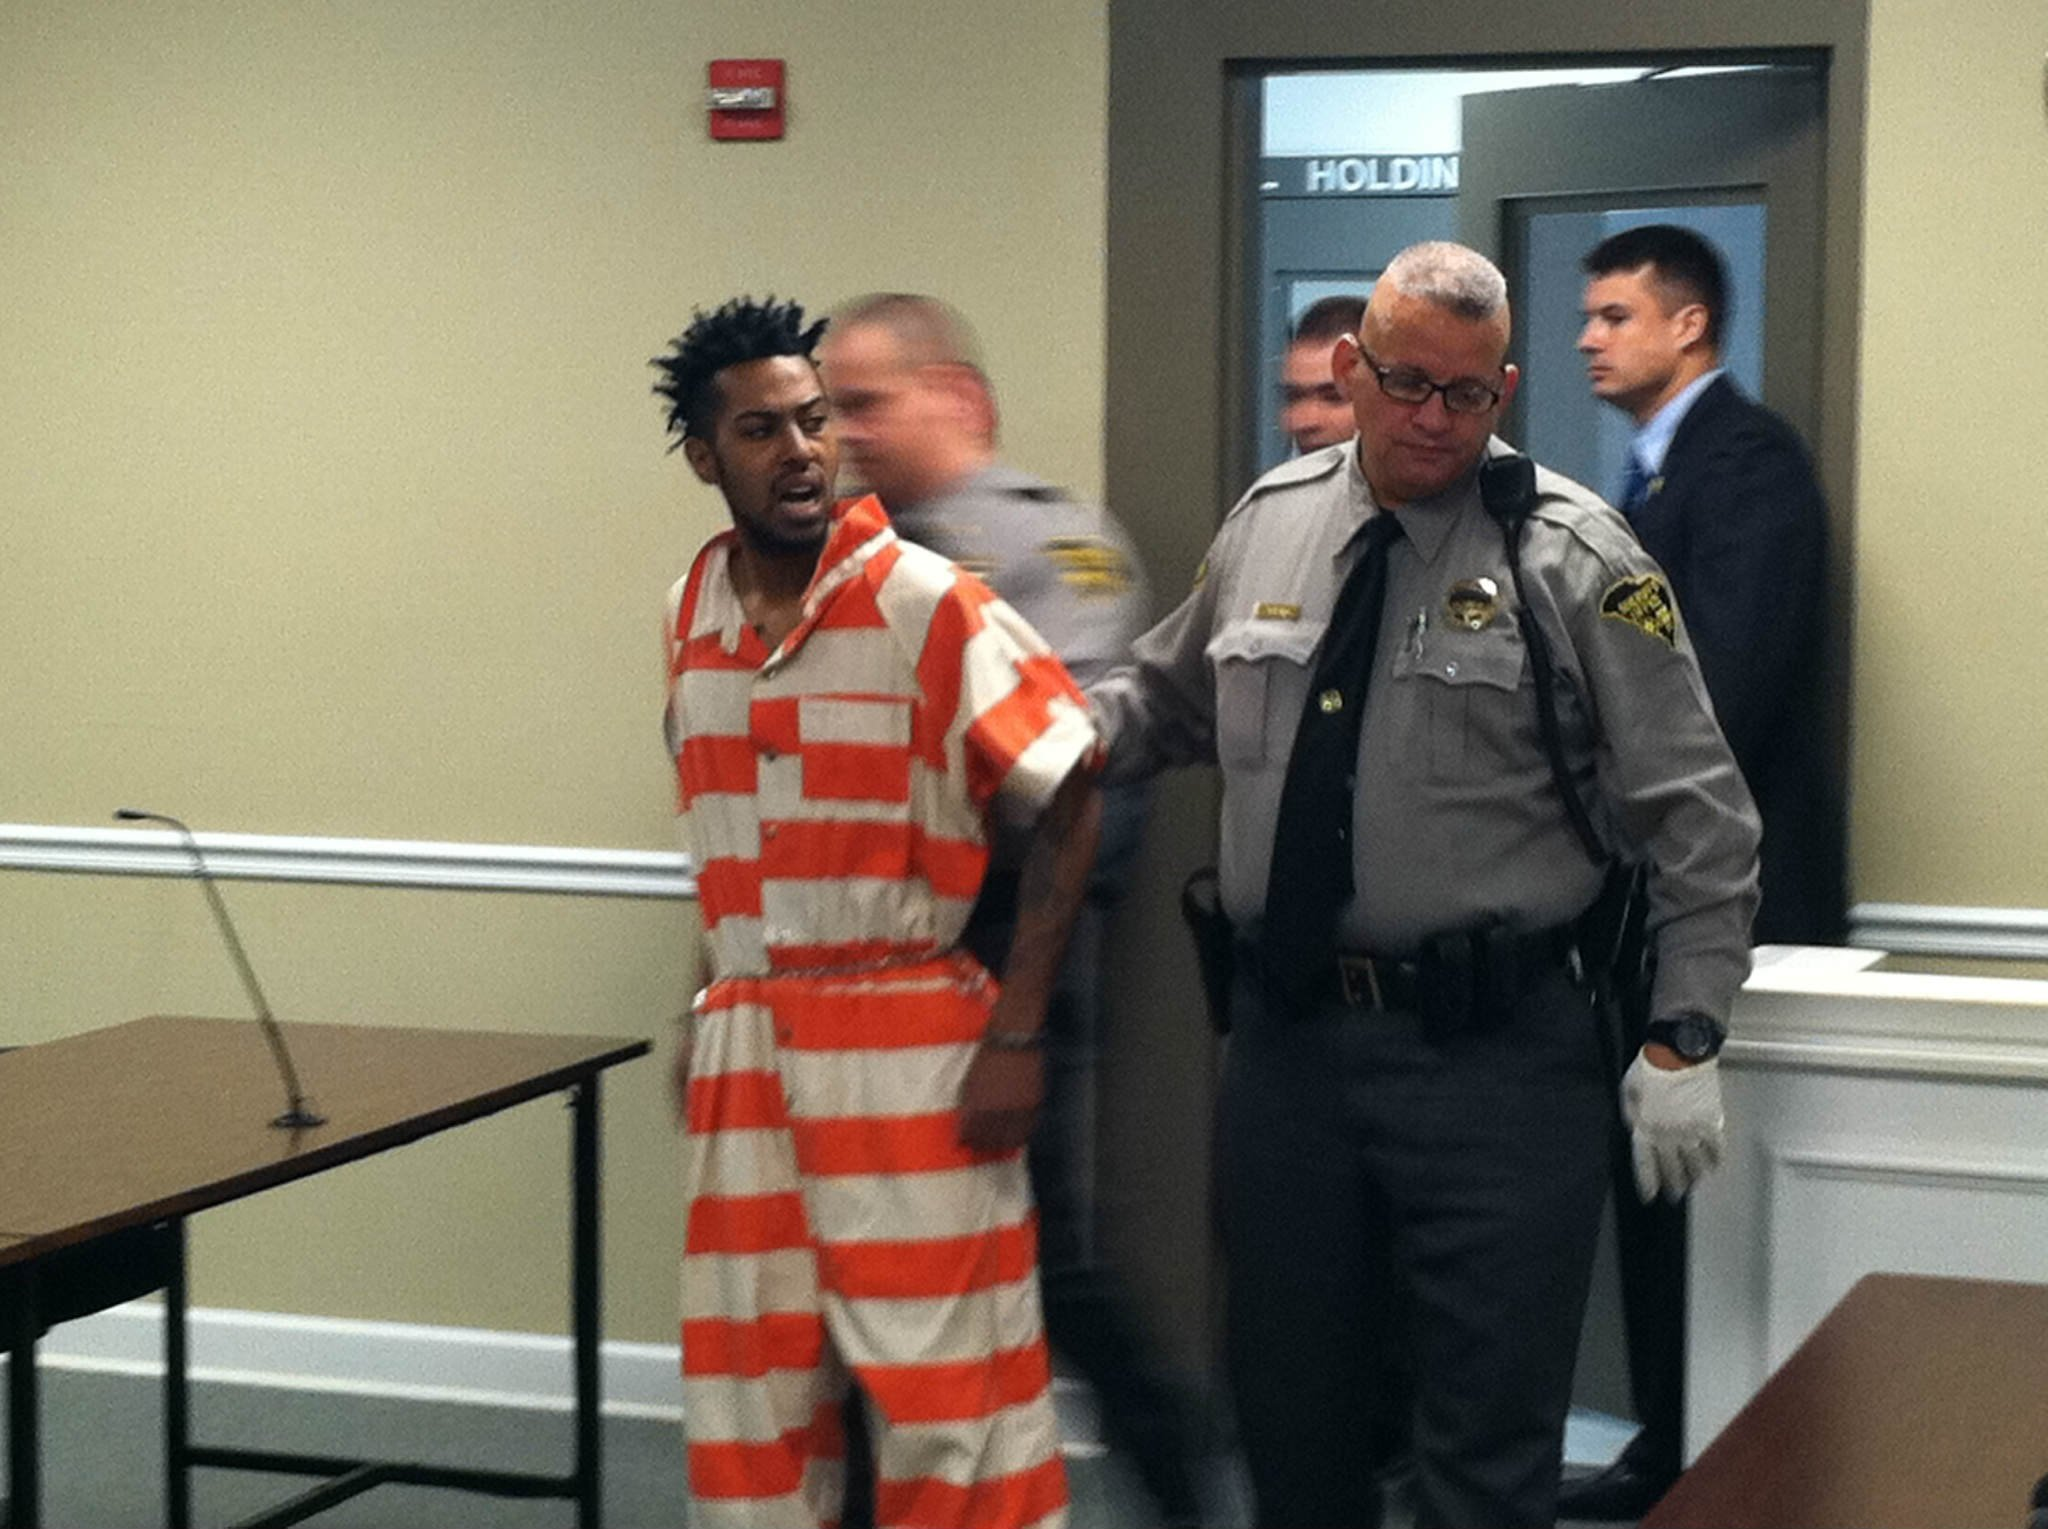 Joshua Jones during his first court appearance. (Source: Mark Barber/Fox 54)